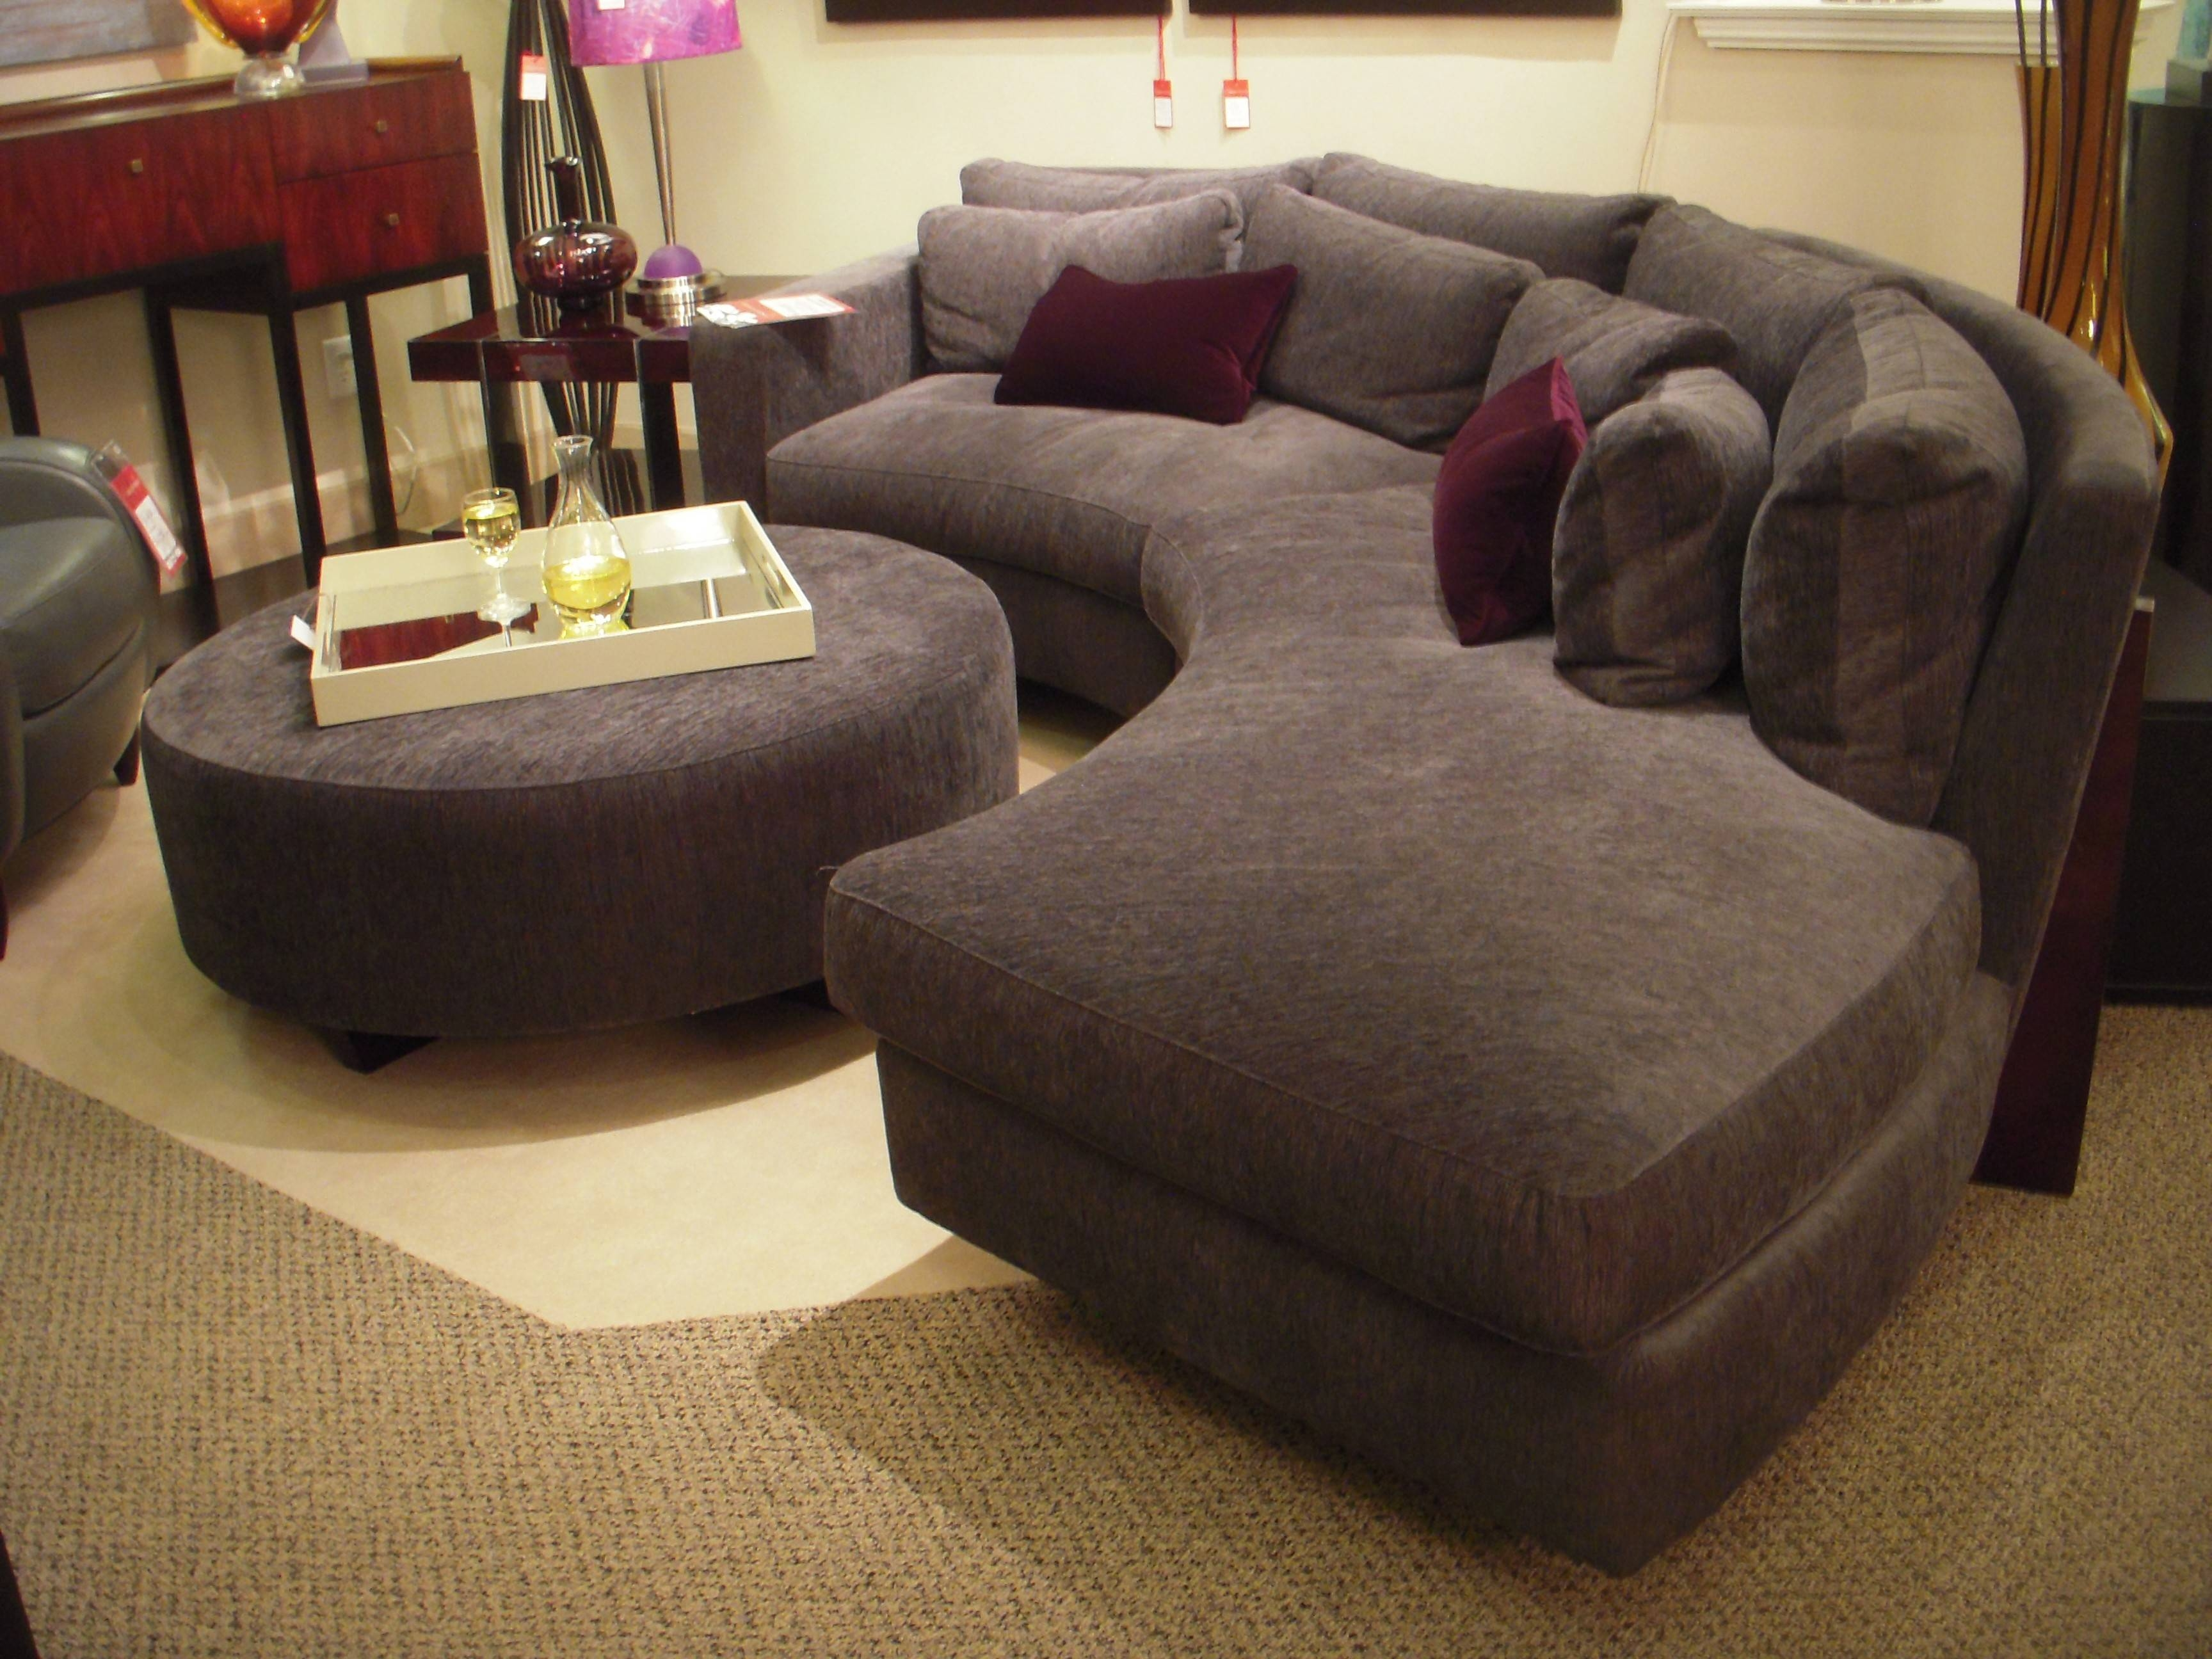 Albany Industries Sofa - Fjellkjeden with regard to Albany Industries Sectional Sofa (Image 12 of 30)